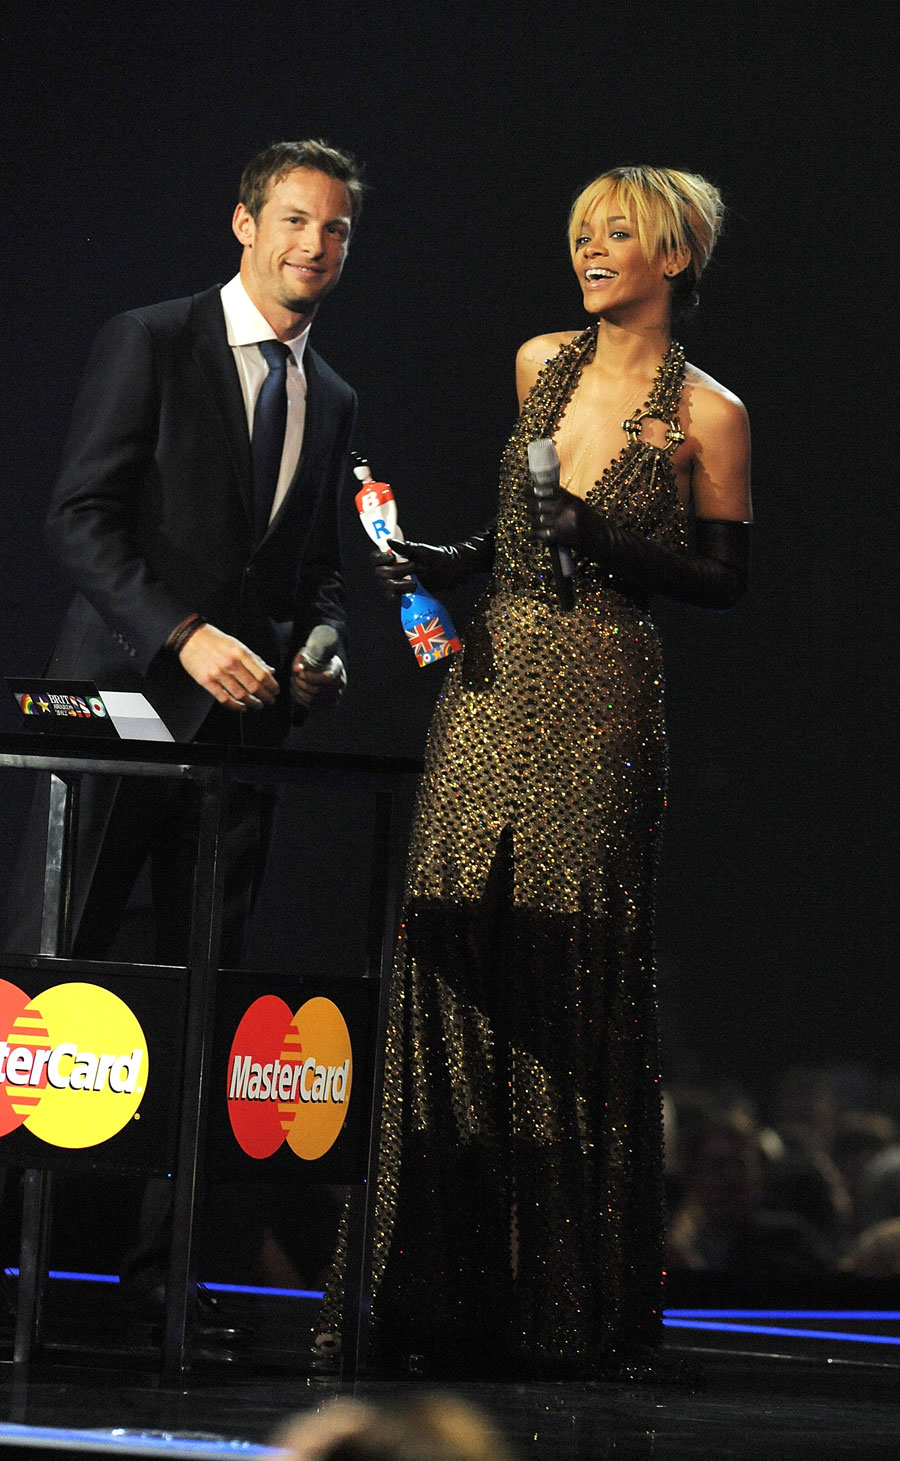 Jenson Button presents Rihanna with an award at the Brit Awards